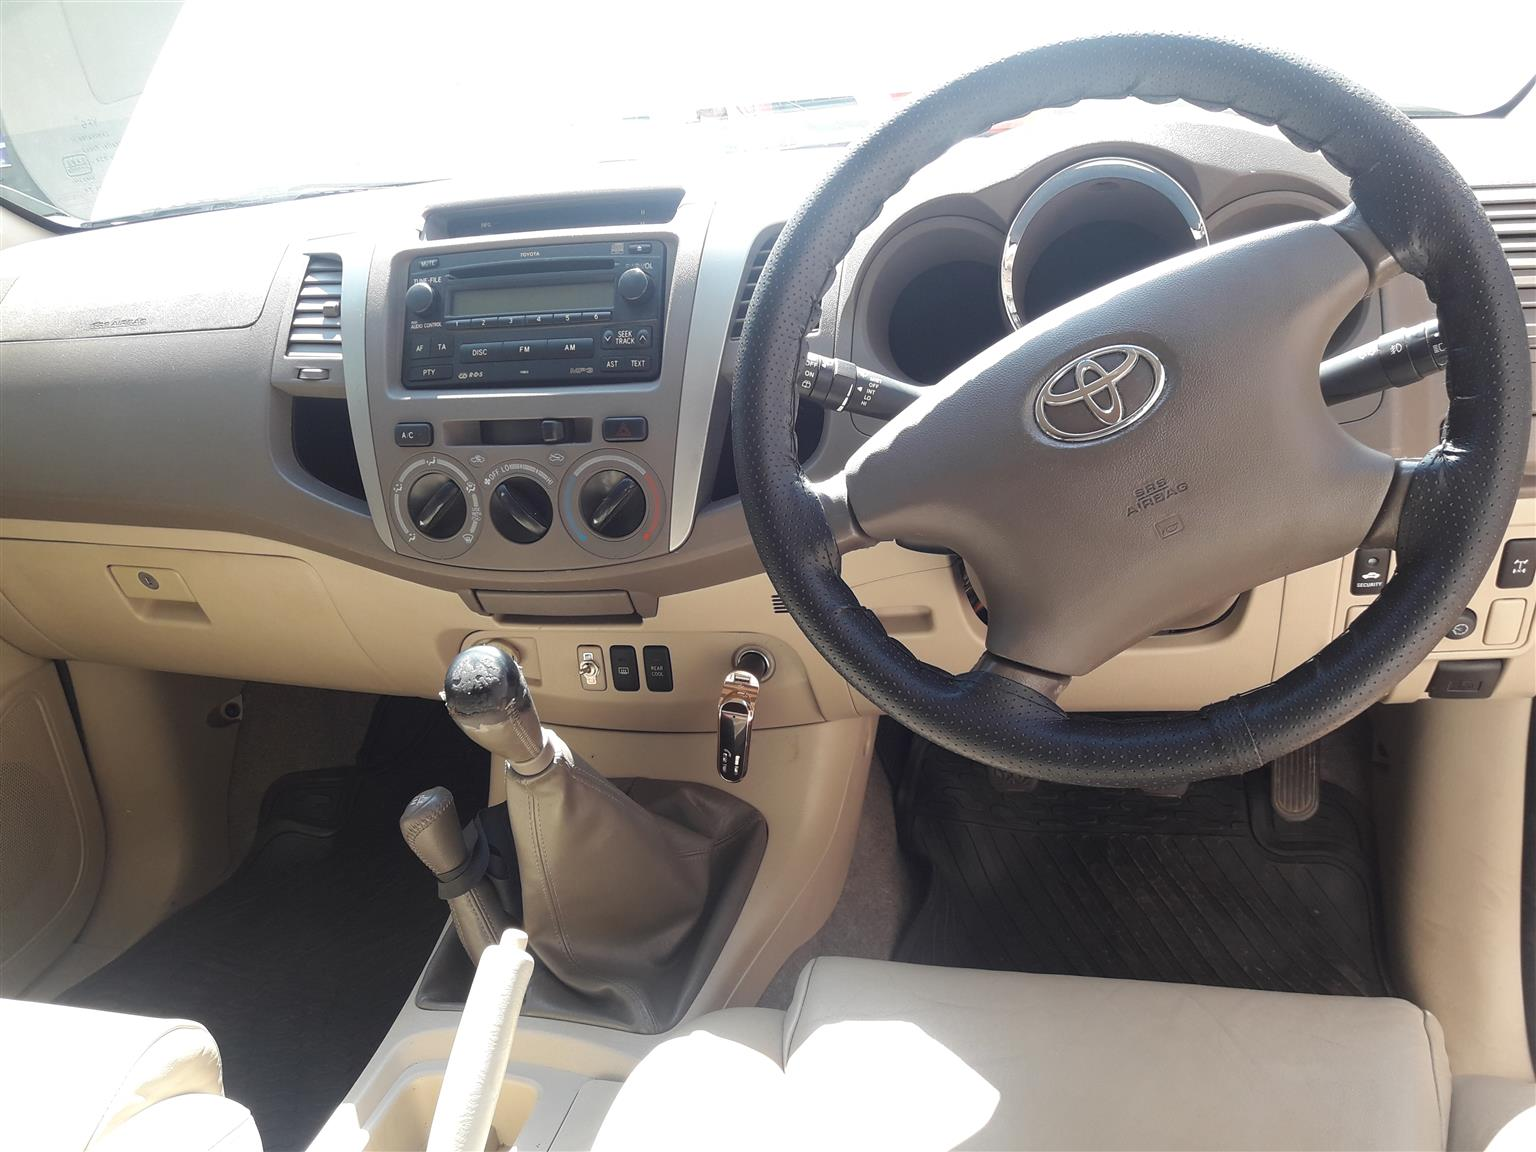 2008 Toyota Fortuner 3.0D 4D 4x4 automatic